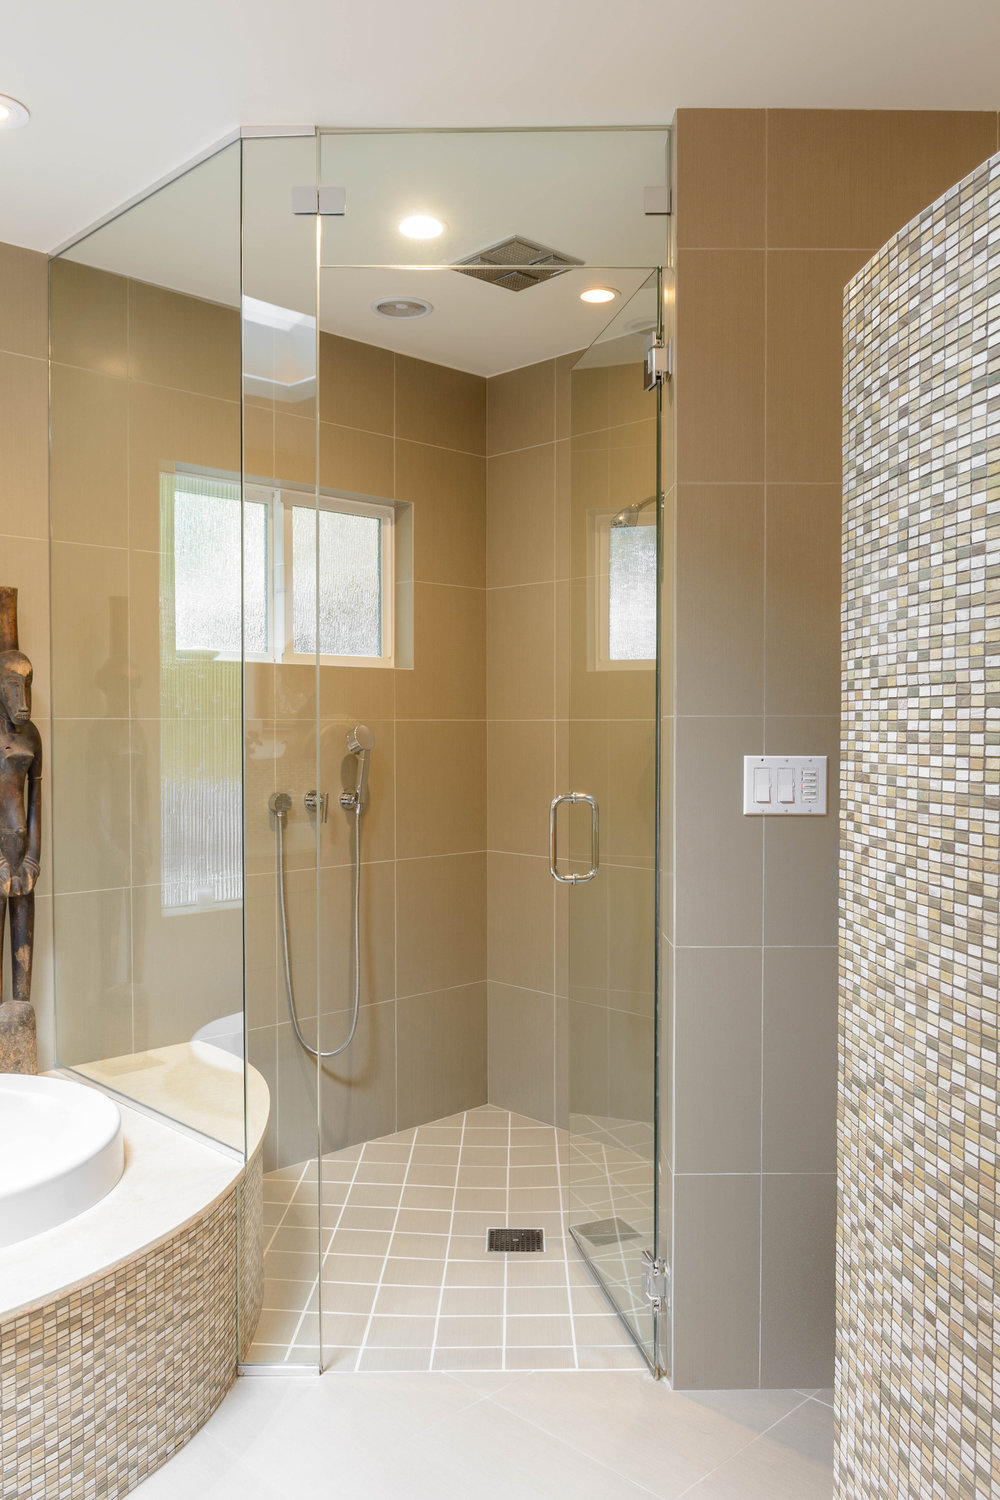 The master bath shower features both rain head and handheld shower fixtures as well as a curdles accessible threshold